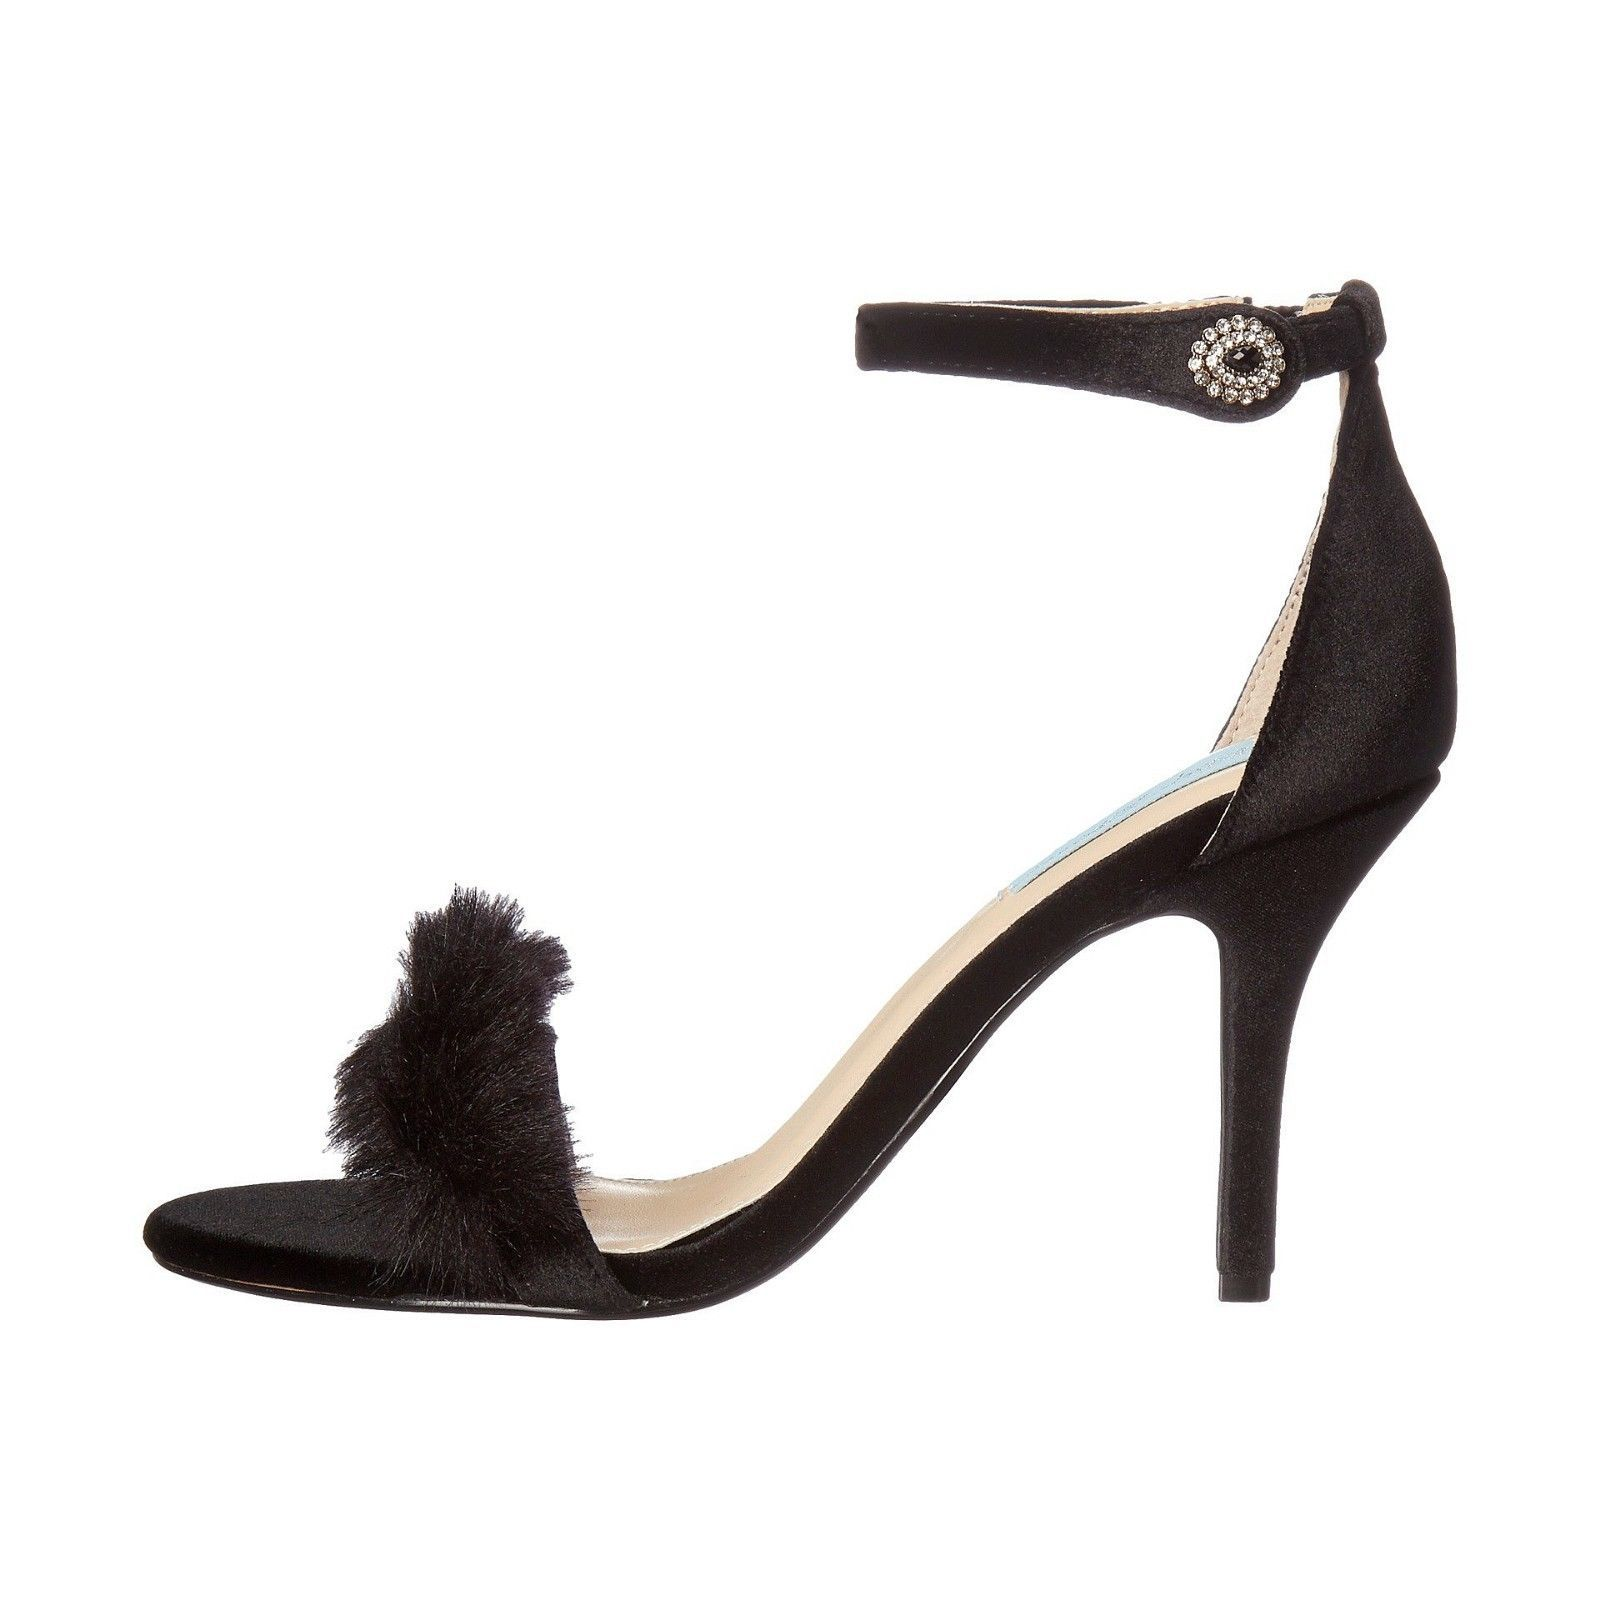 Betsey Johnson Crystal Nolte Black Velvet Faux Fur High Heel Pumps 6 NIB